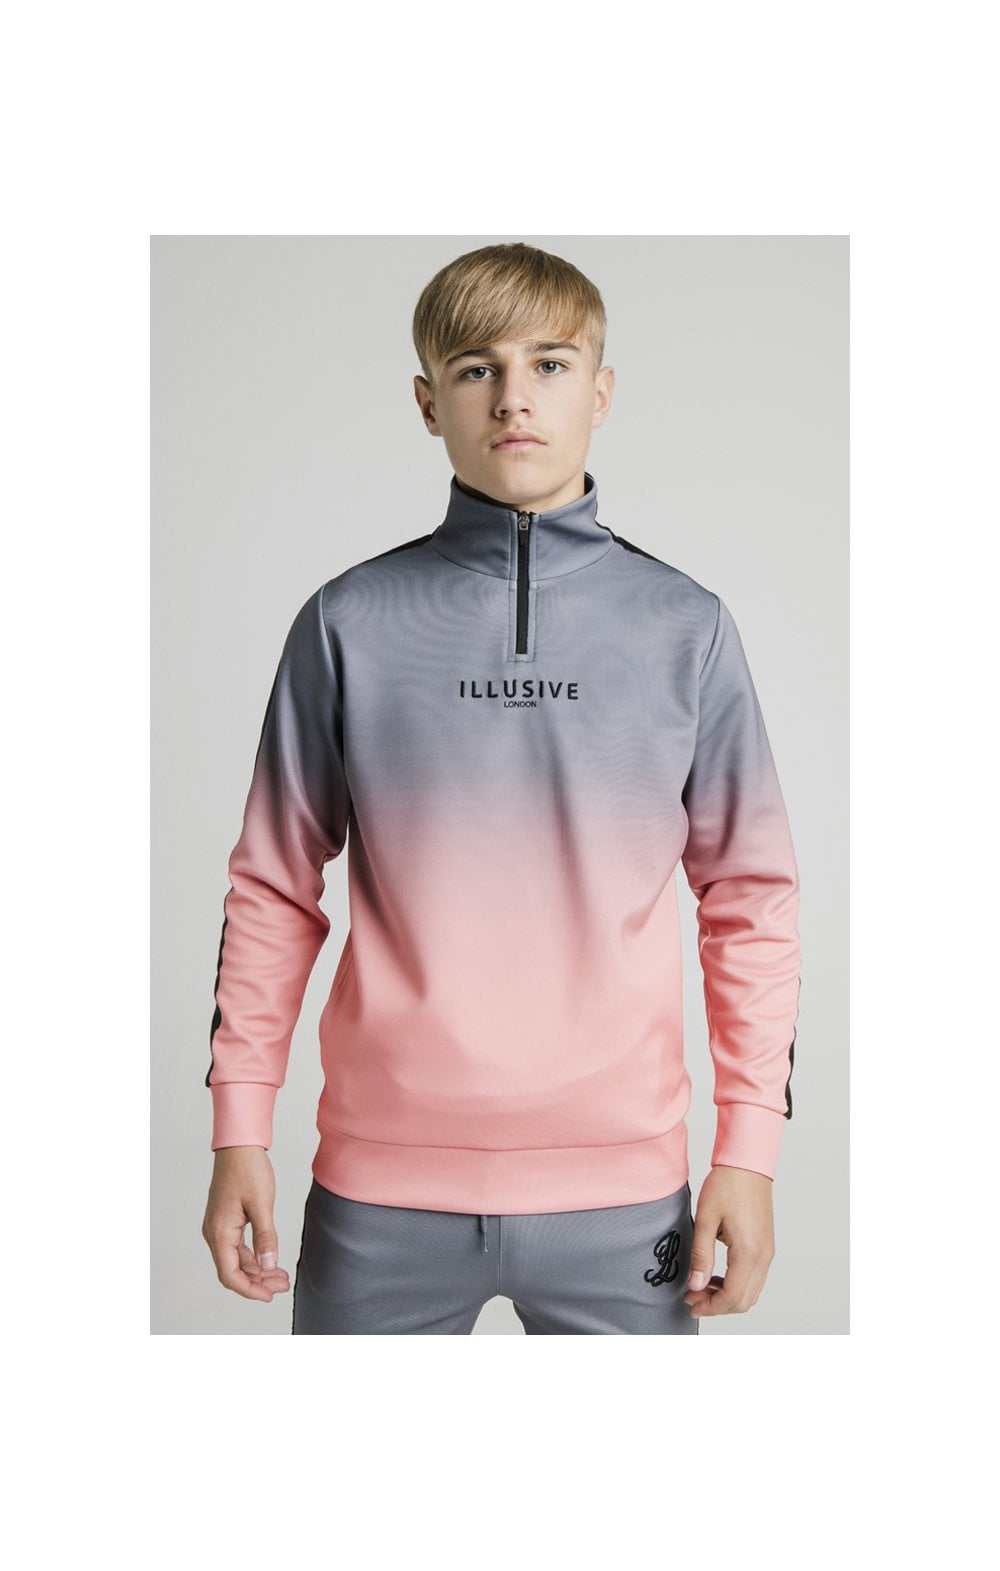 Illusive London 1/4 Zip Fade Hoodie - Grey & Peach